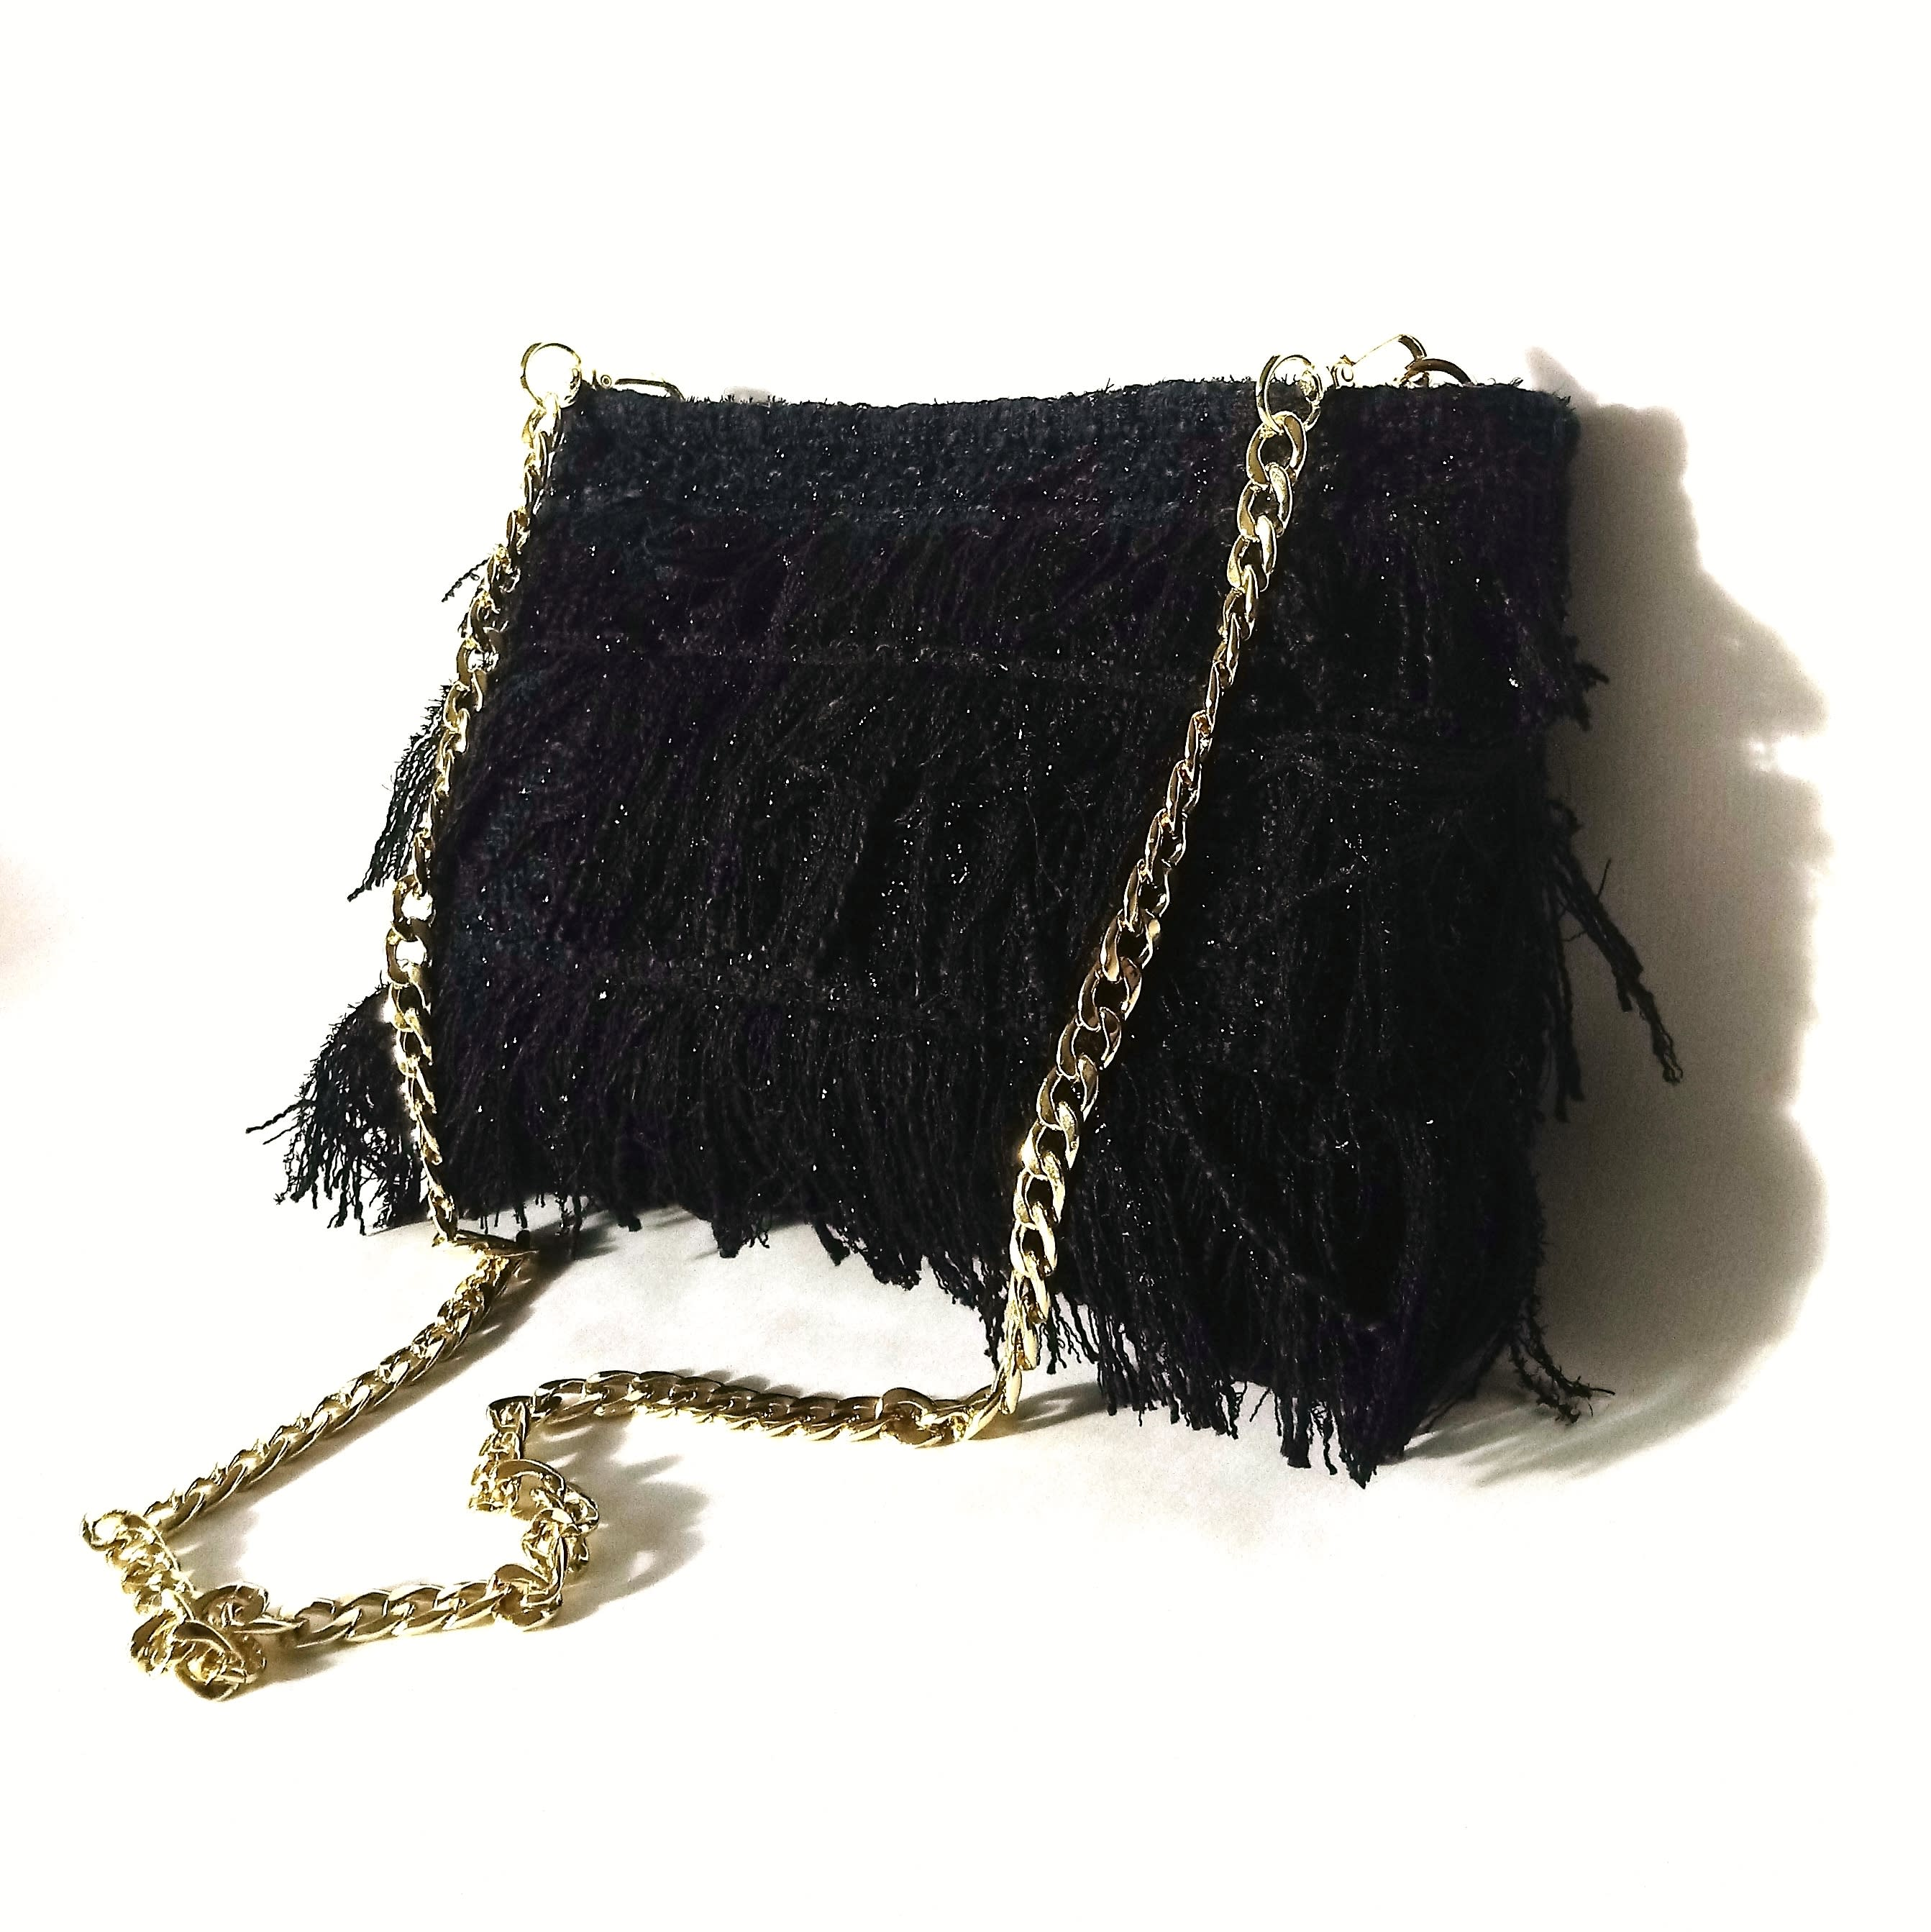 Black evening bag with fringe. Up dressed event clutch bag. Black tweed couture with glossy threads purse.